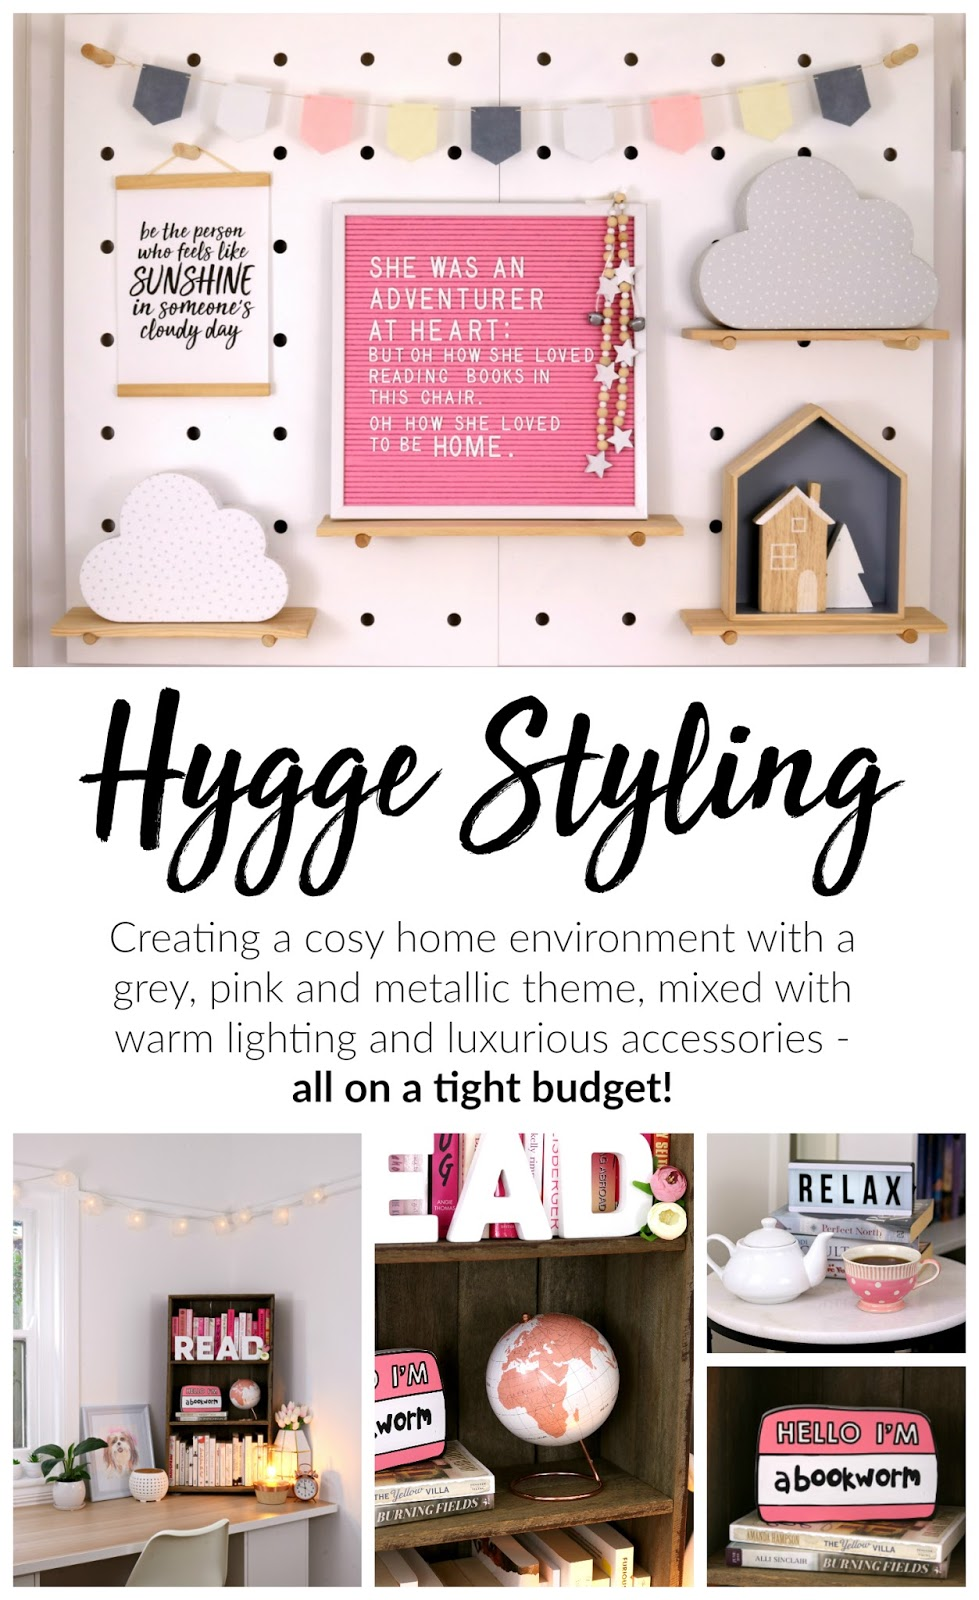 Hygge Winter Home Styling Inspiration – Pink and Grey Decor Theme for Bedroom, Living Room or Home Office on a Budget